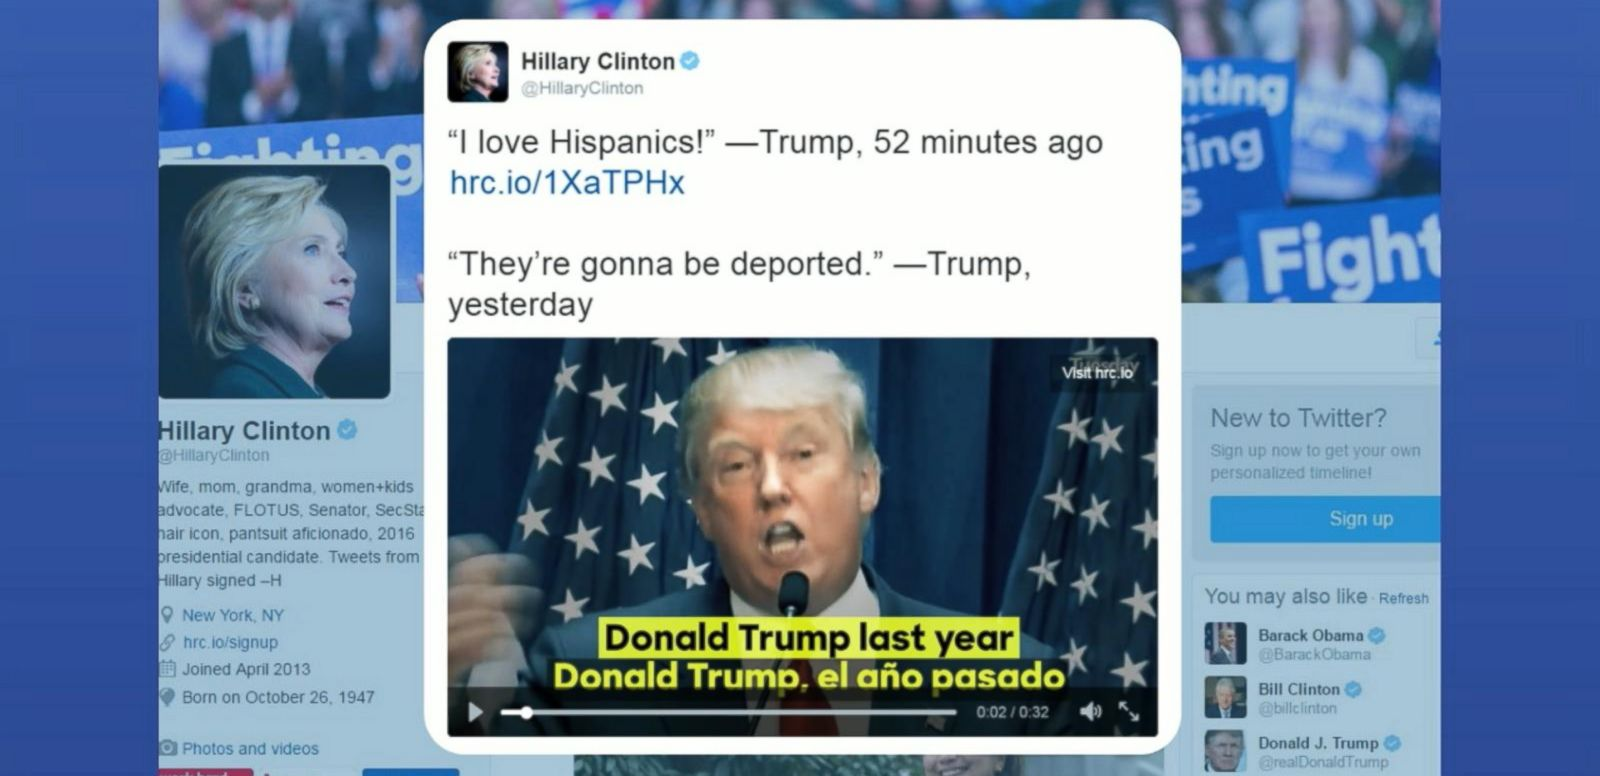 VIDEO: Election 2016: Will Trump's Tweet Affect His Campaign?